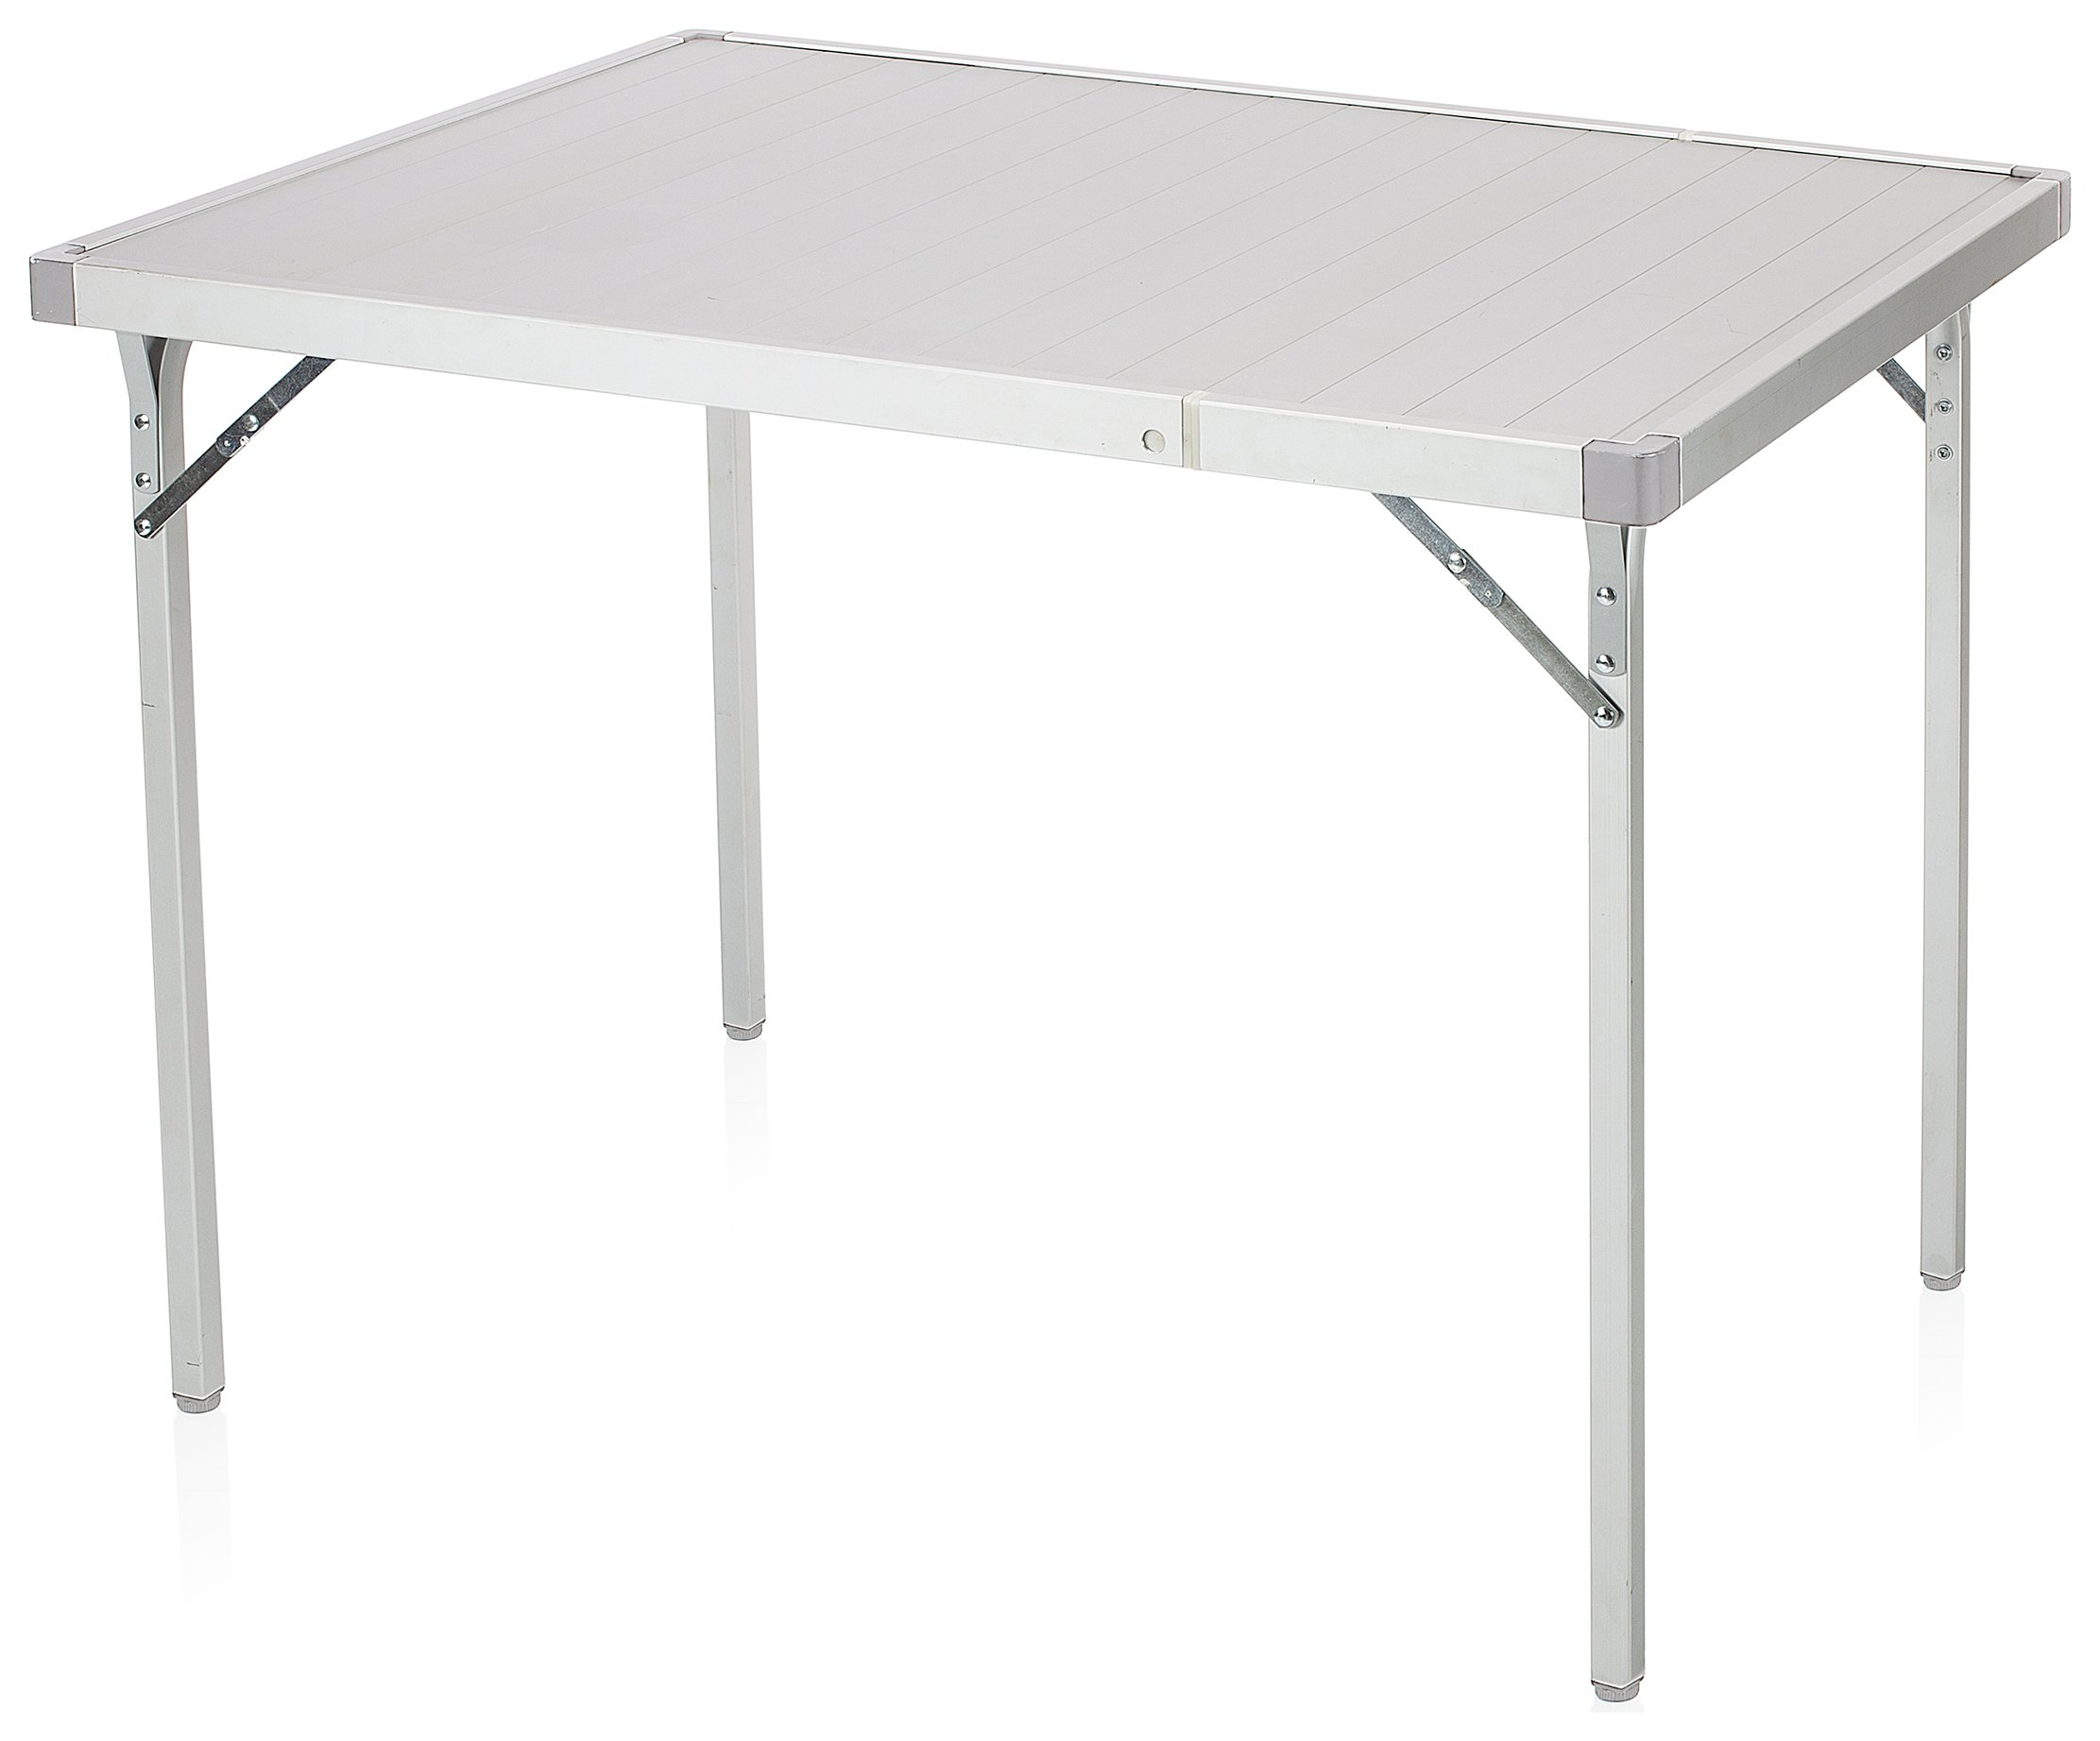 Image of Campart Travel Alabama Foldable Camping Table